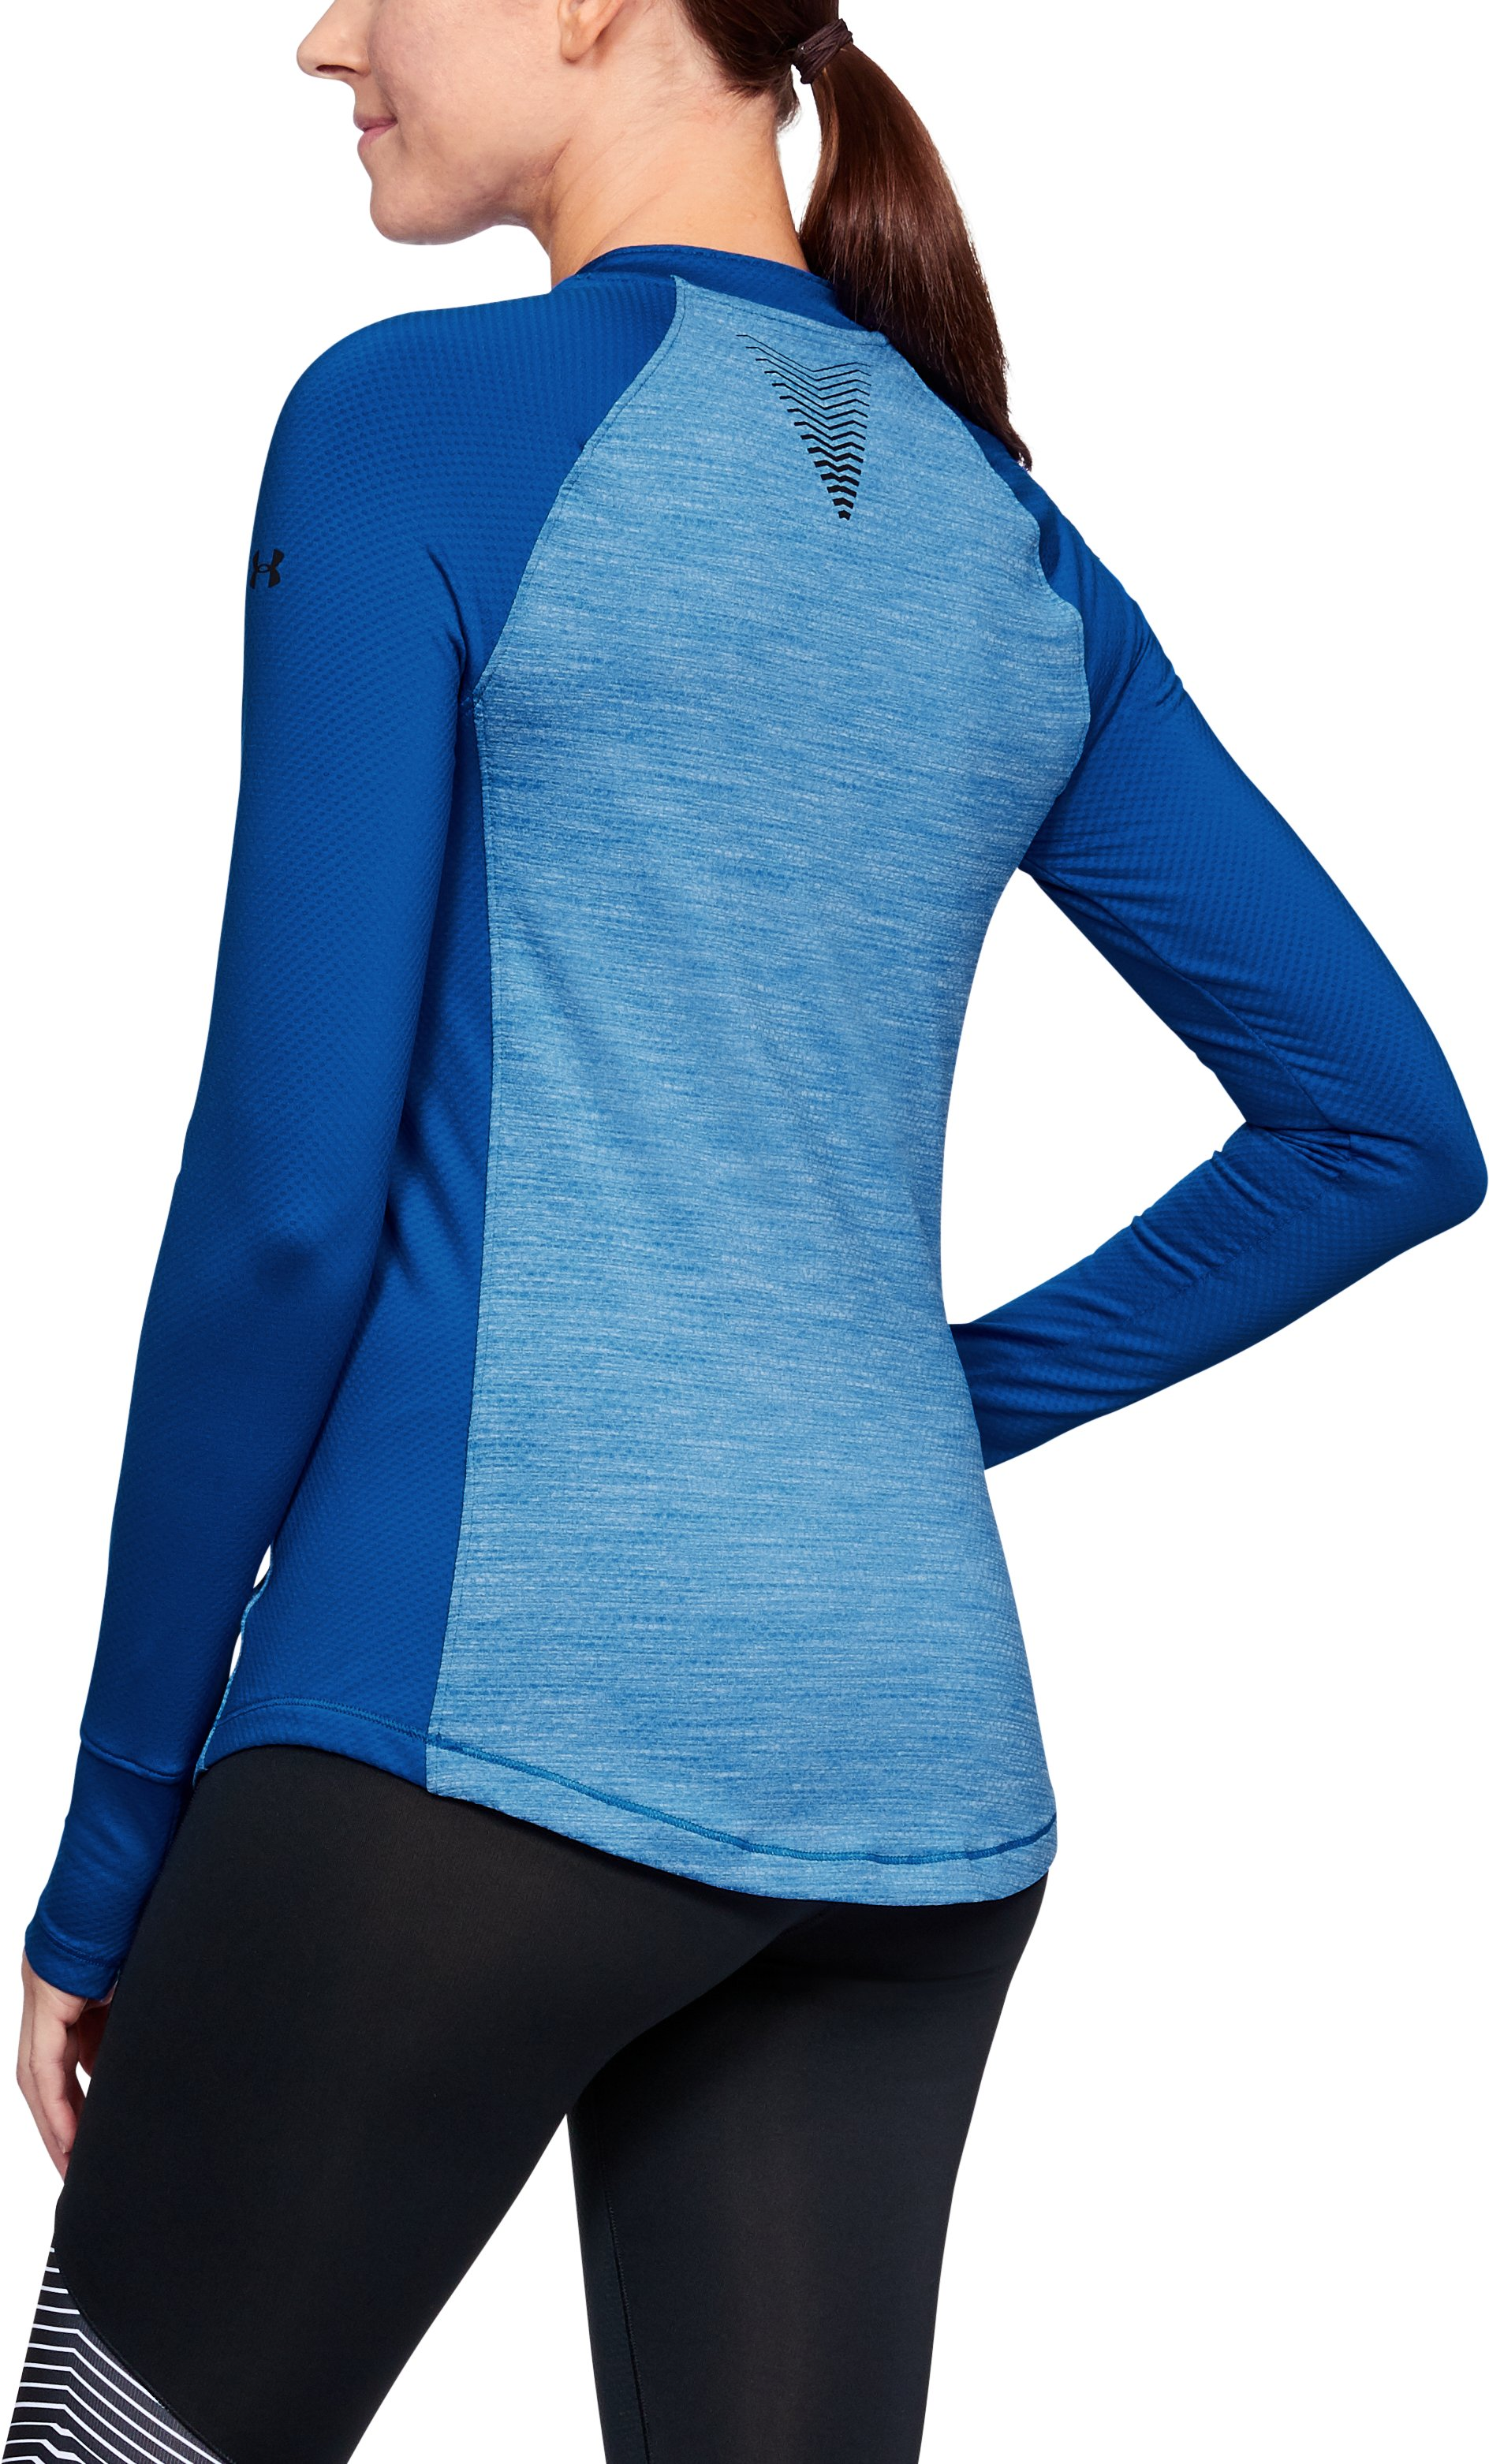 Women's ColdGear® Reactor Long Sleeve, LAPIS BLUE LIGHT HEATHER